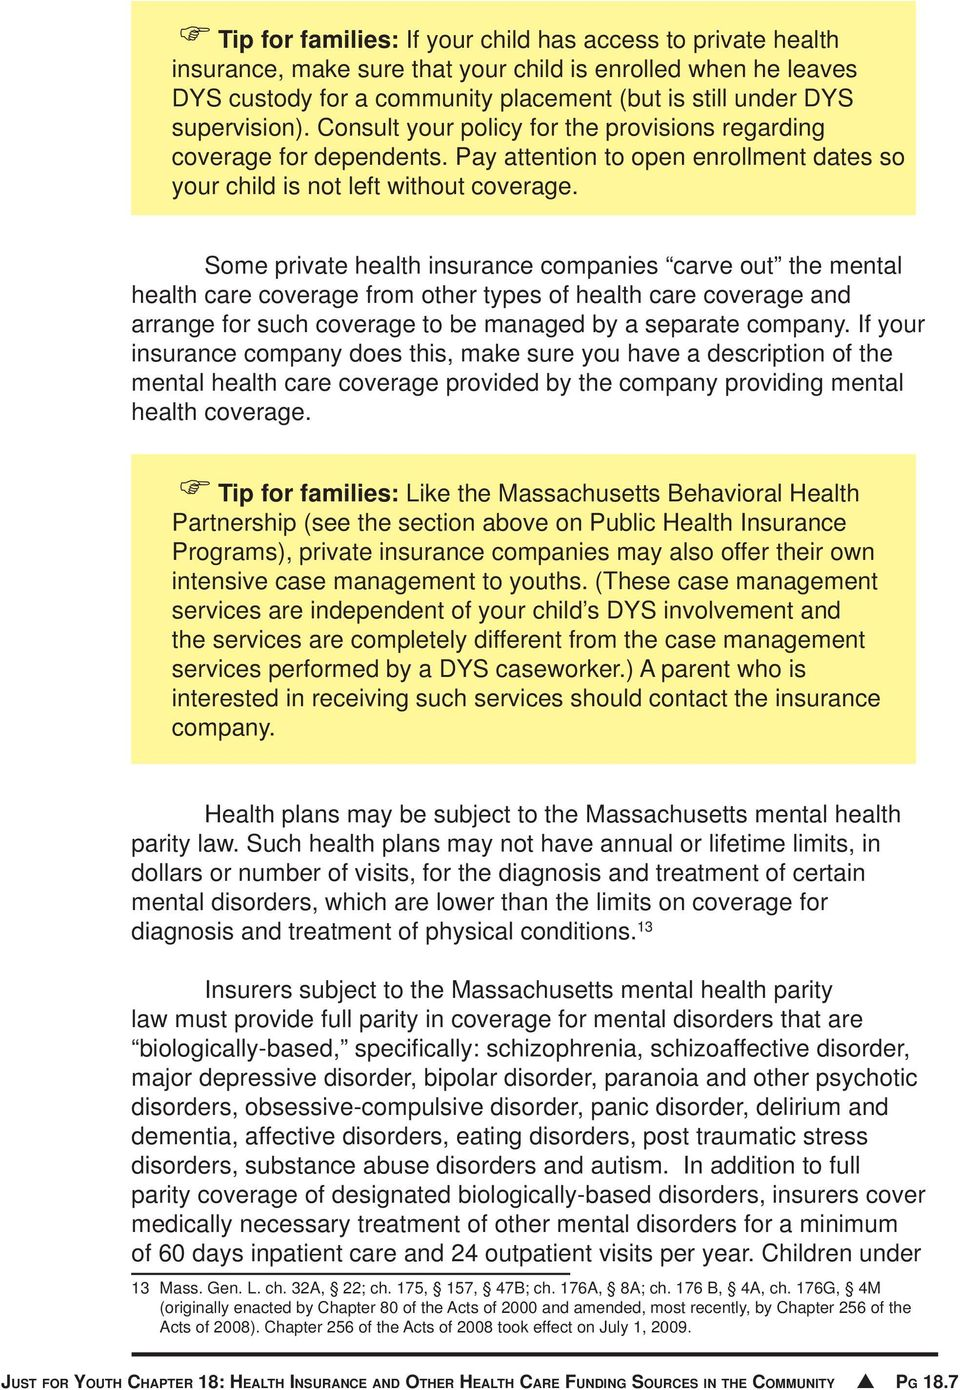 Some private health insurance companies carve out the mental health care coverage from other types of health care coverage and arrange for such coverage to be managed by a separate company.